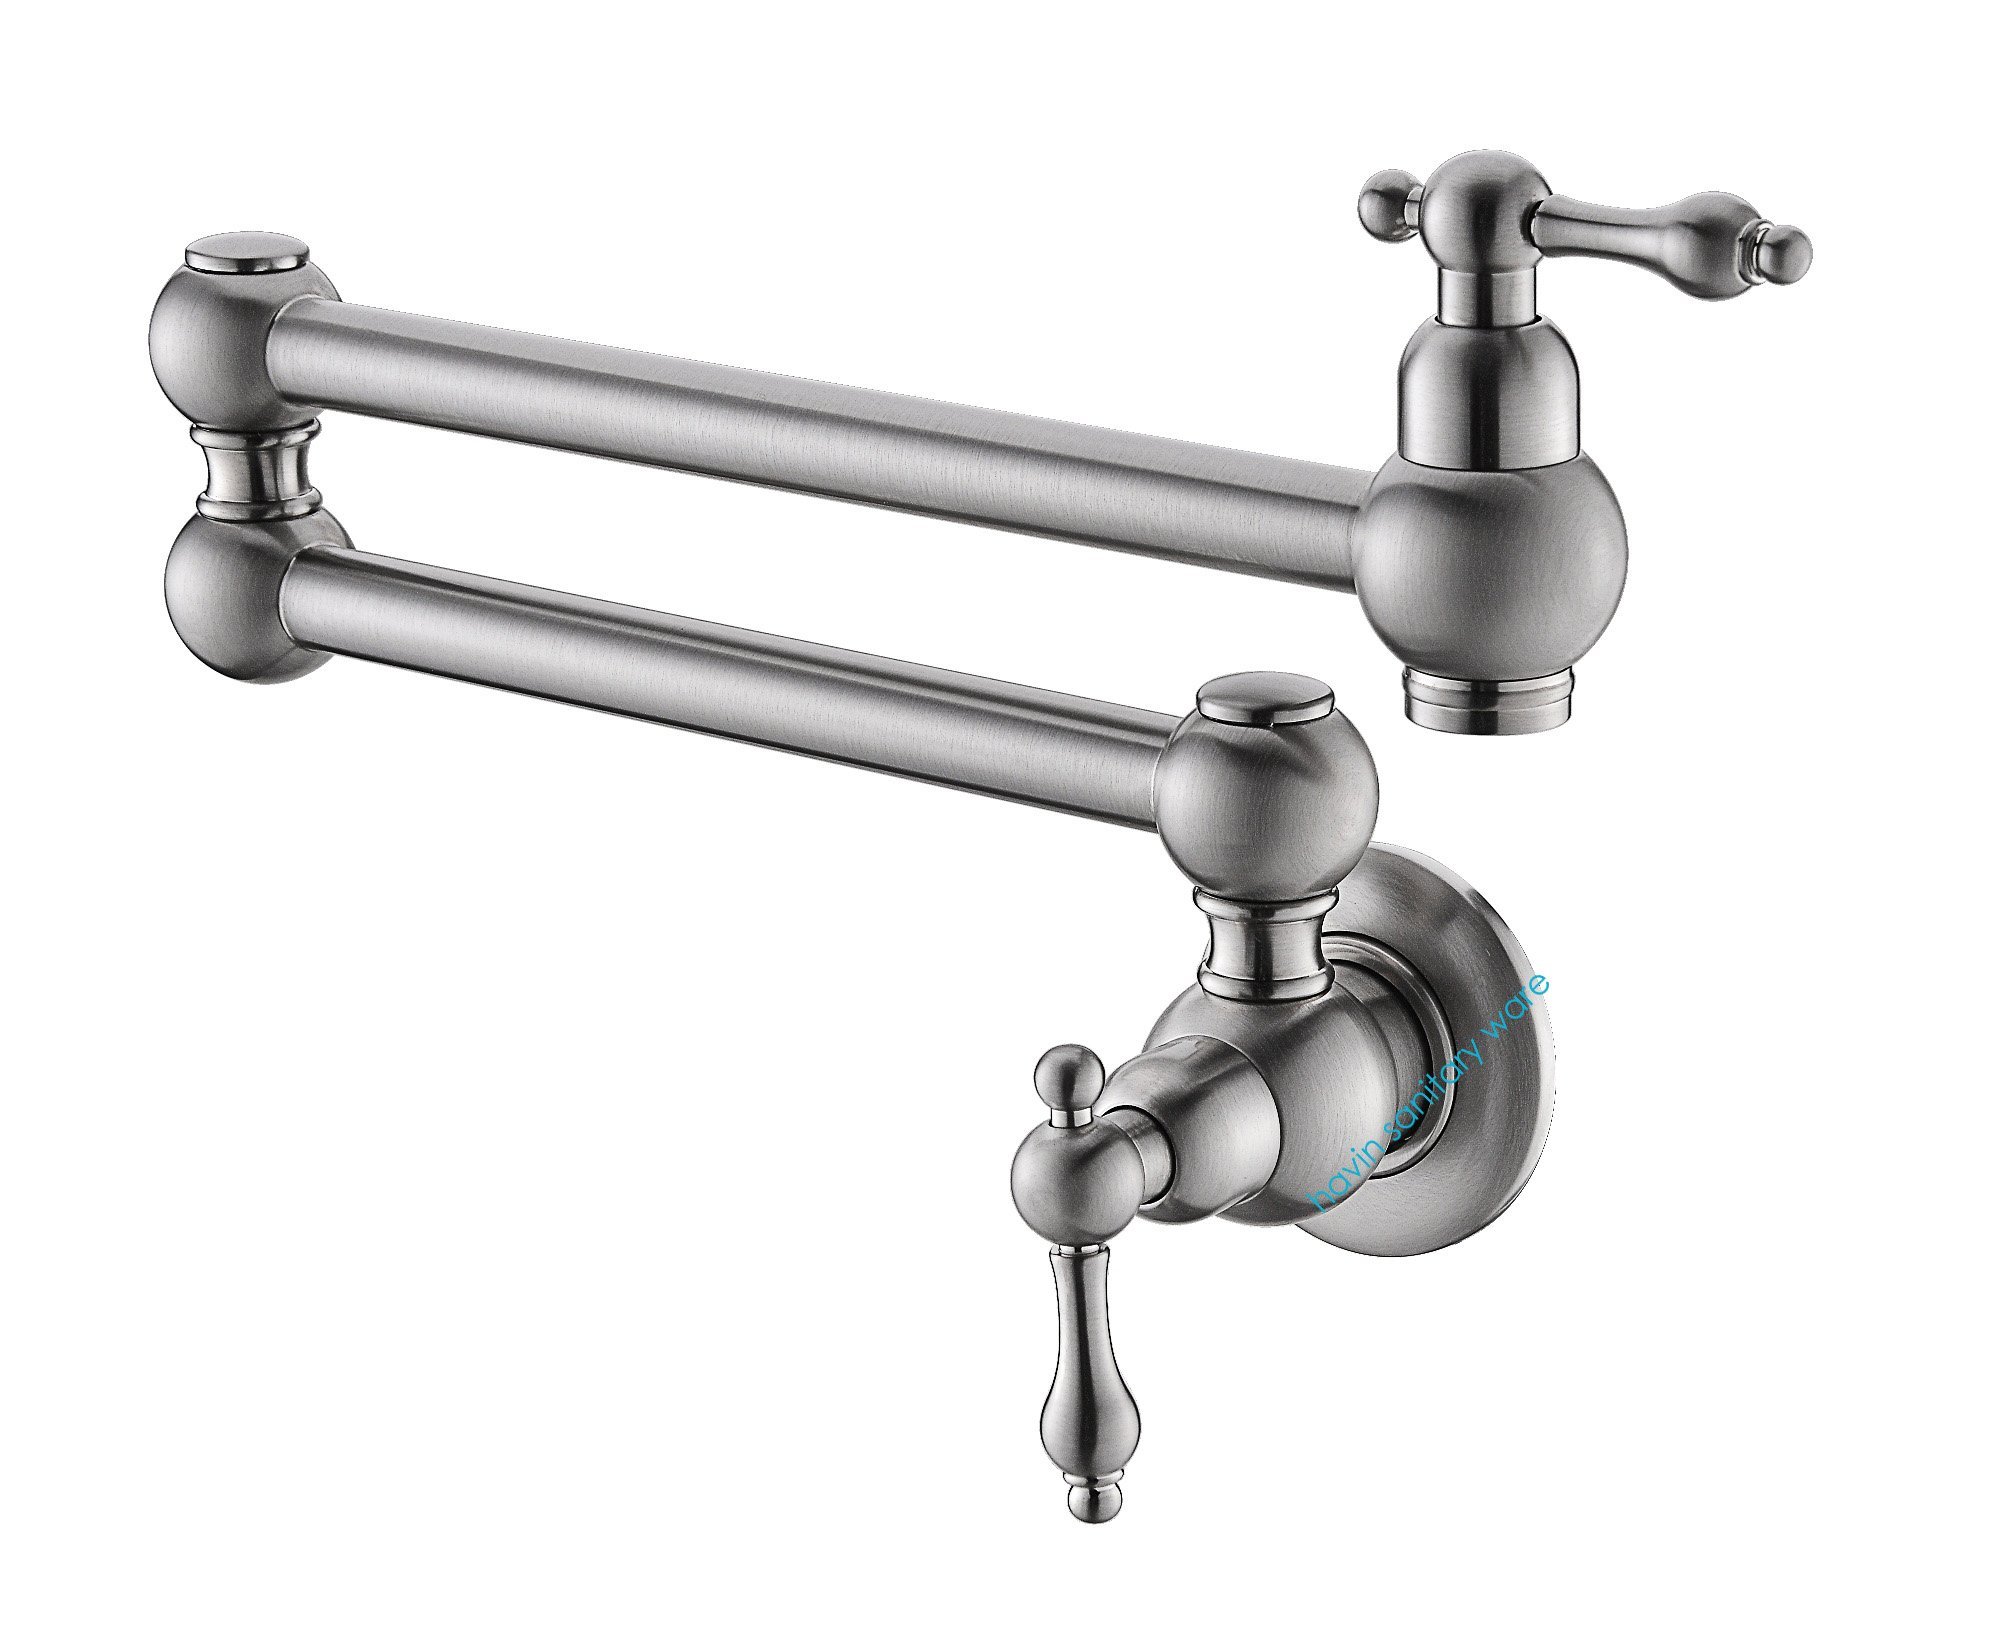 Havin Pot Filler Folding Stretchable Double Joint Swing Arm Brushed Nickel Wall  Mount Kitchen Faucet,